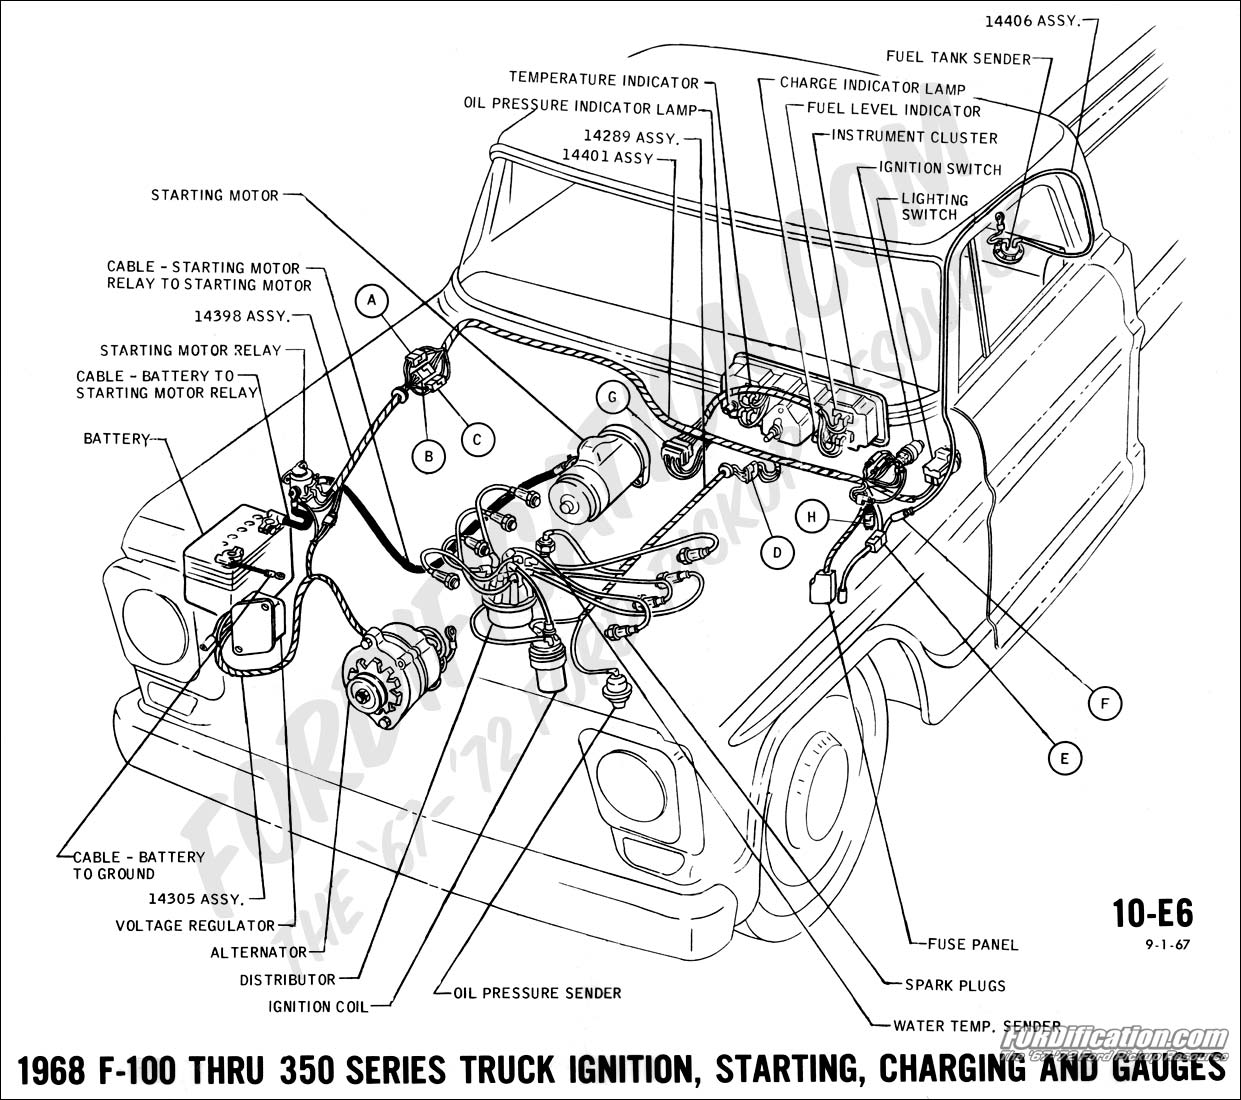 68 F100 Fuse Box Wiring Library 1967 Pontiac Firebird Diagram 1968 F 100 Thru 350 Ignition Starting Charging And Gauges